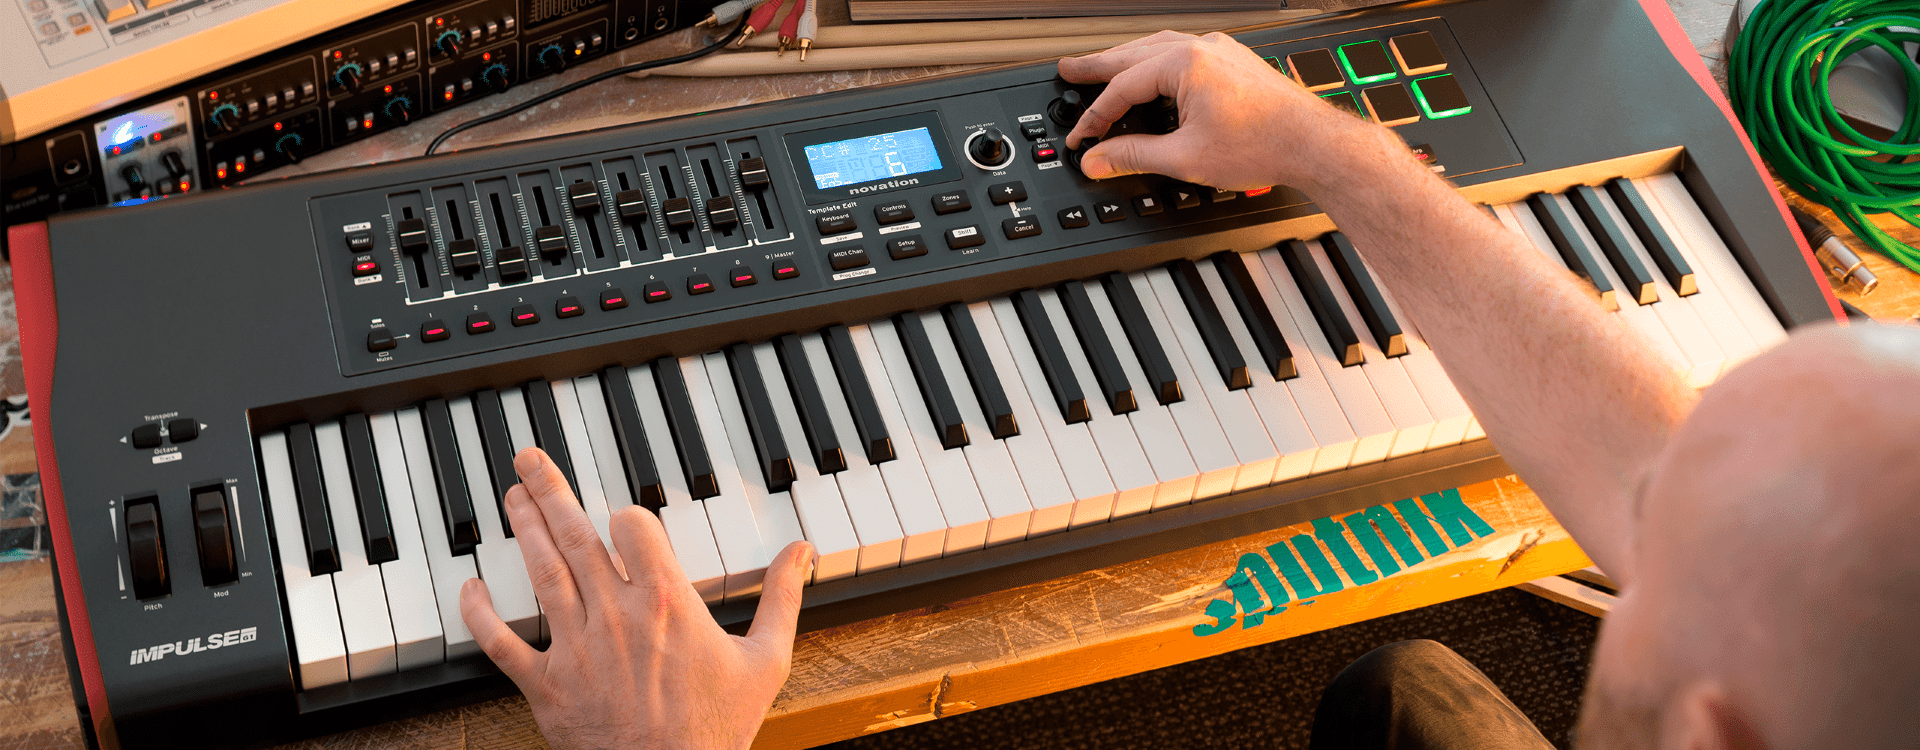 Best MIDI Keyboards for Logic Pro X Reviewed in Detail [Feb. 2020]